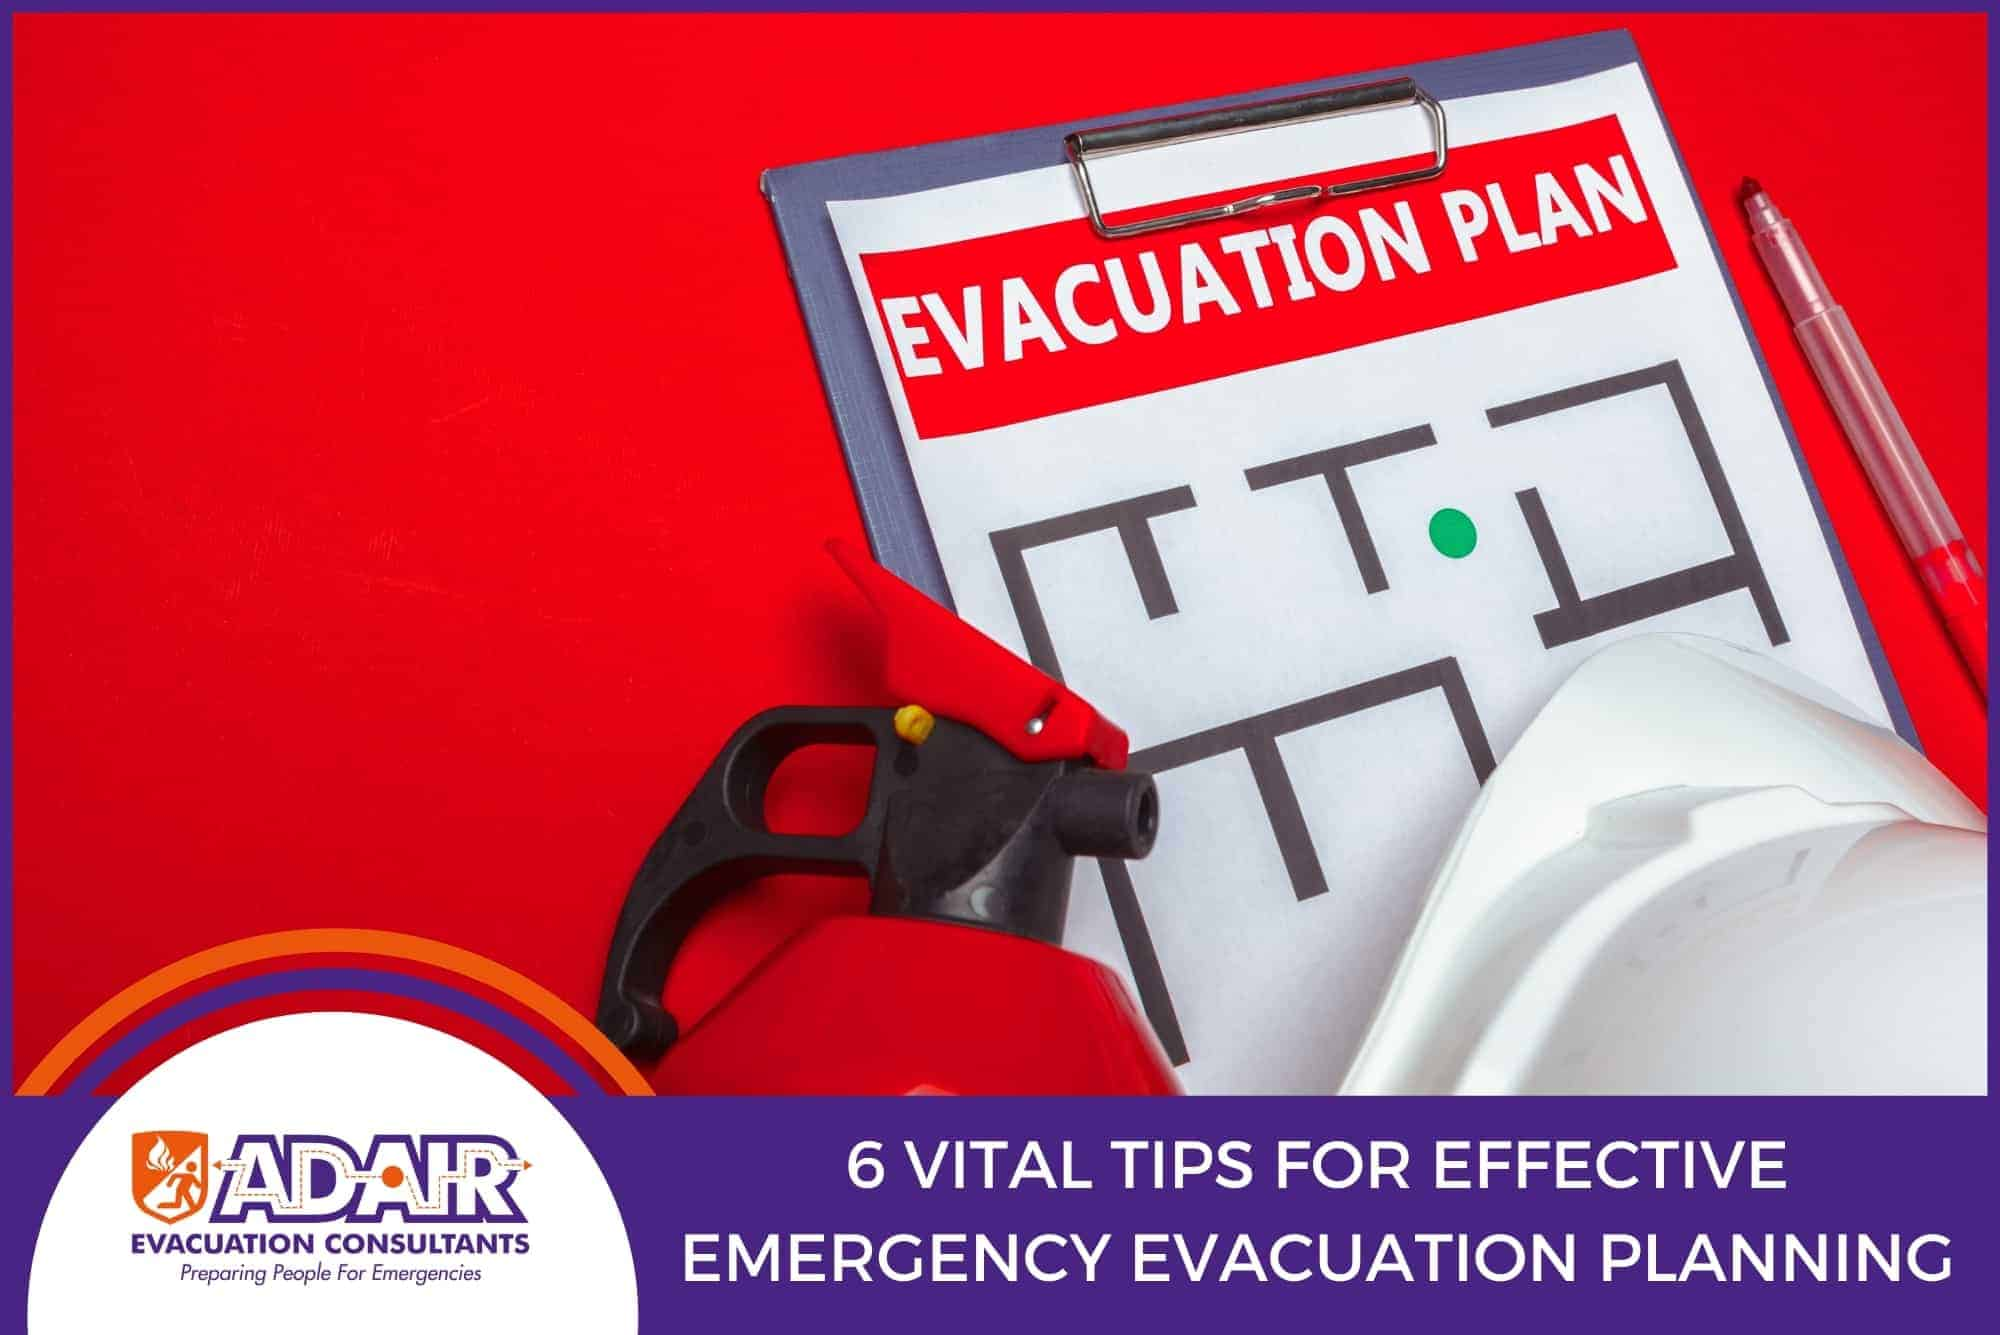 6 Vital Tips for Effective Emergency Evacuation Planning